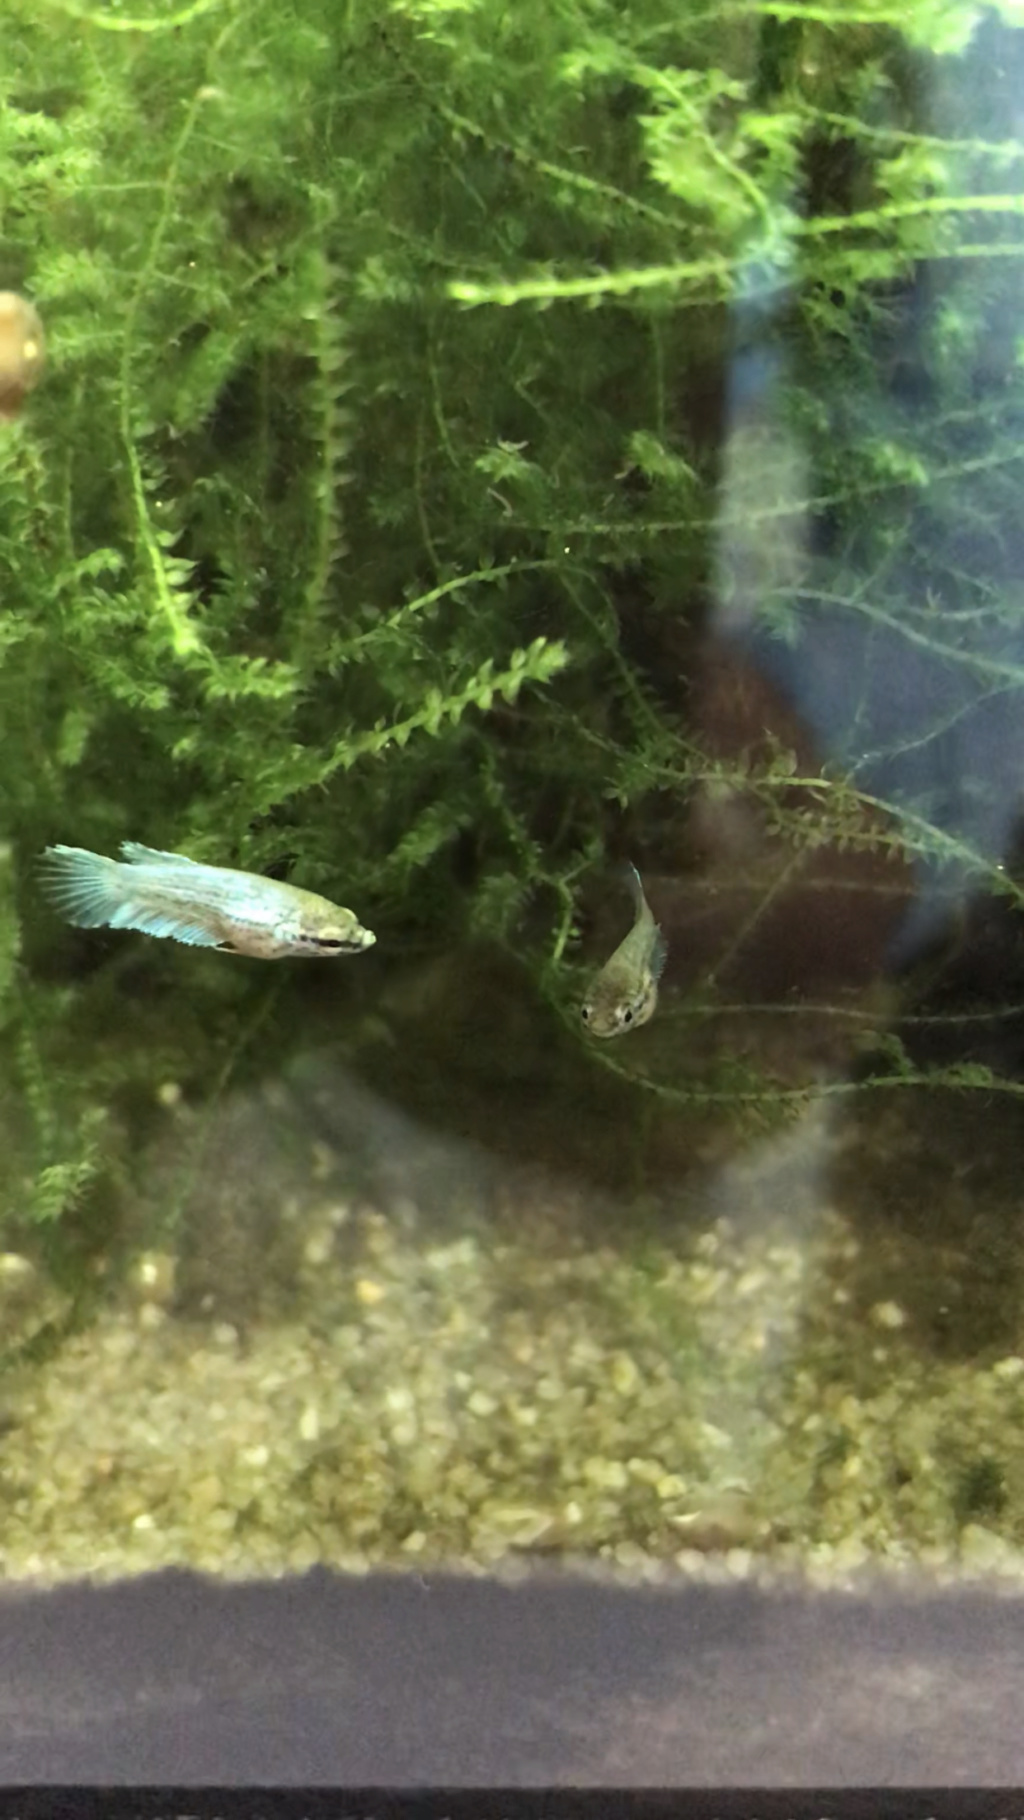 Reproduction du Betta splendens 9d26bc10